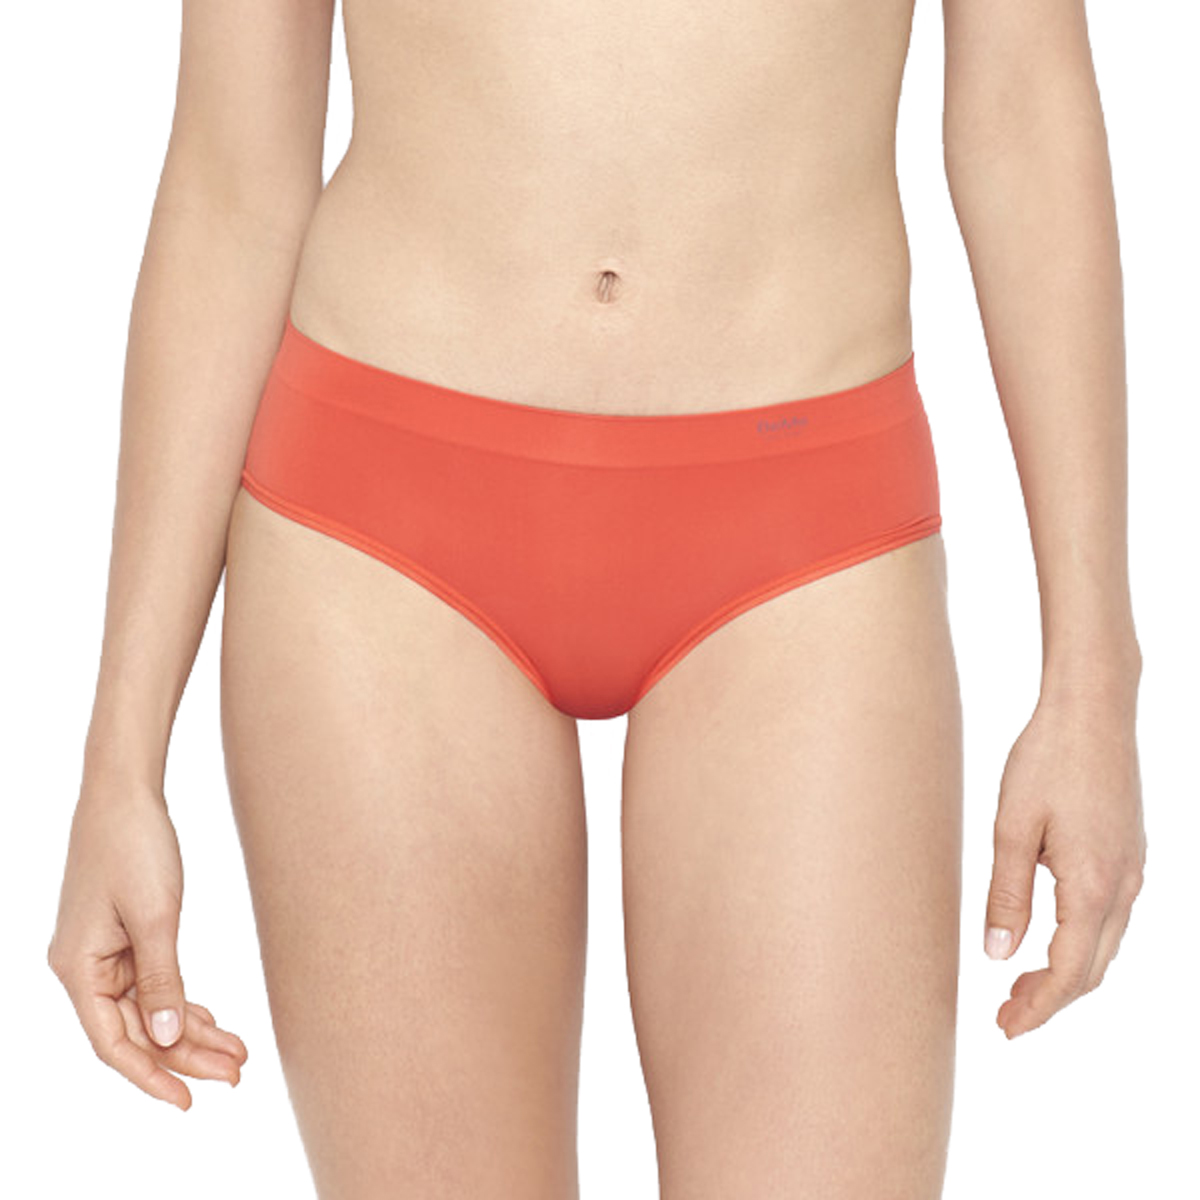 BeMe NYC Women's Invisibles Hipster Panties